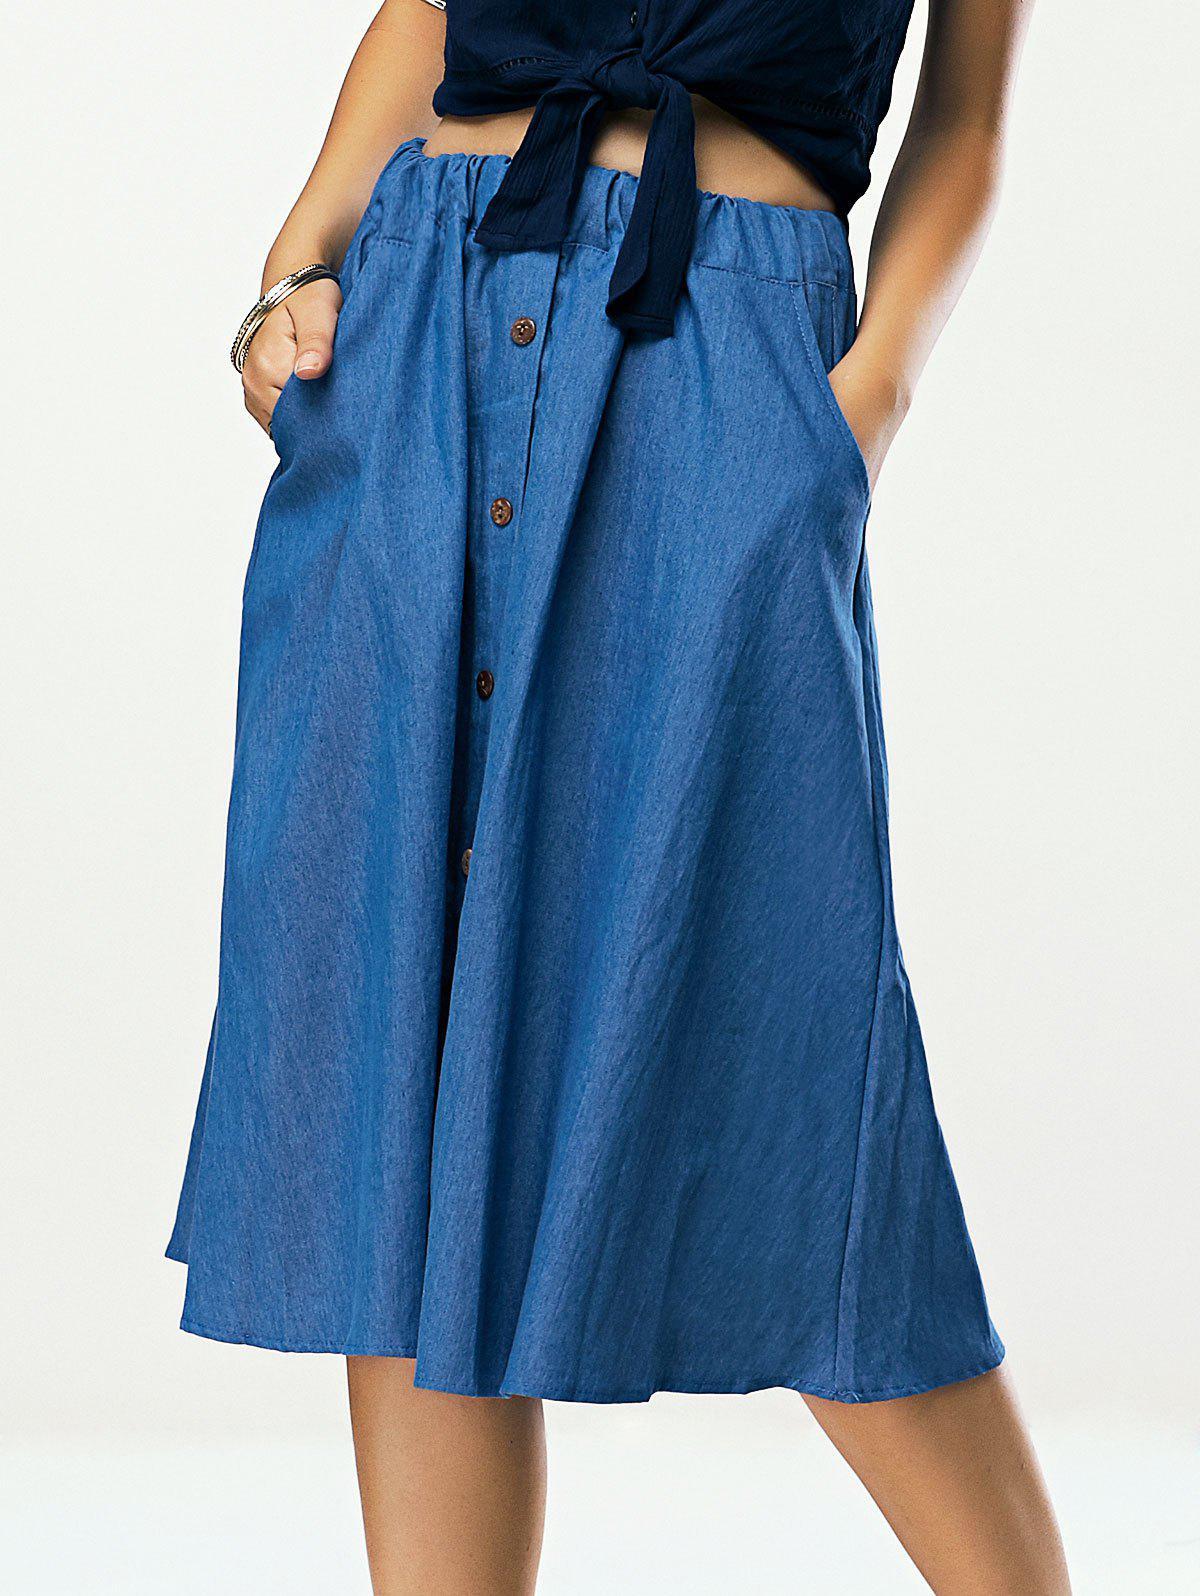 Pleated Pocket Design Denim Skirt